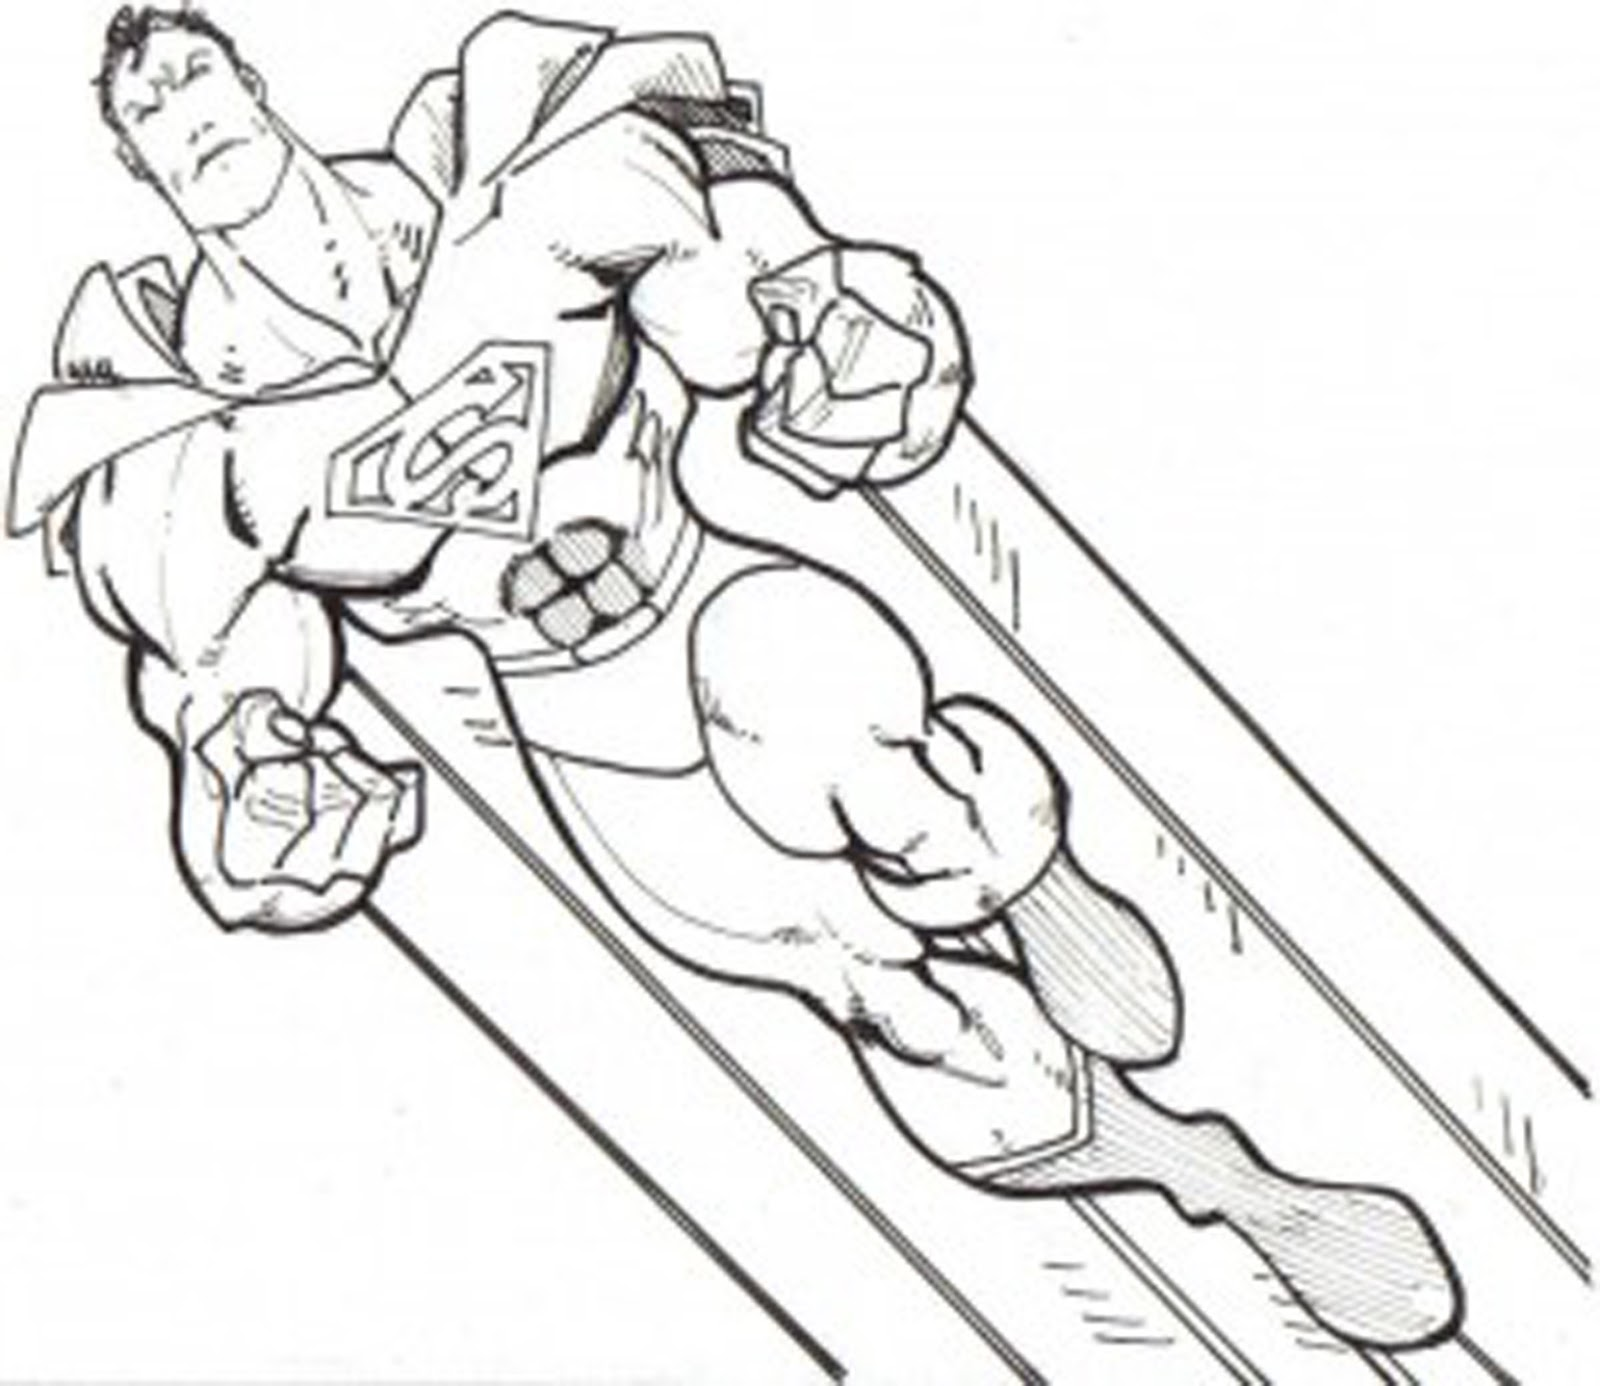 Baby Superman Coloring Pages. Graphic Designs  Illustrations Logo and Vector Art by Peter Dranitsin Coloring Pages For Kids